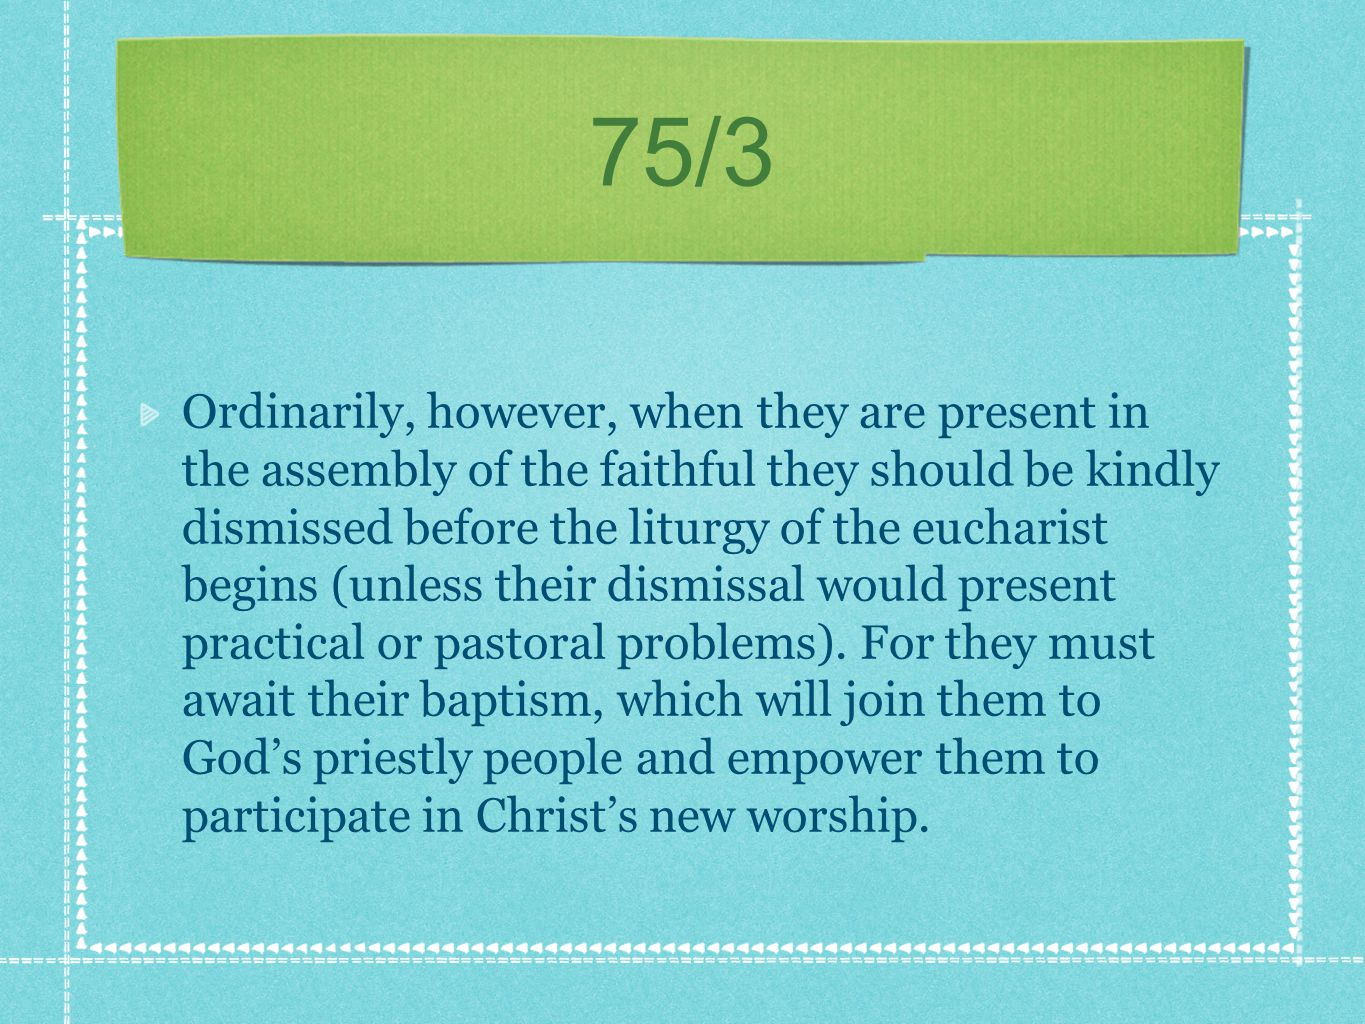 75/3 Ordinarily, however, when they are present in the assembly of the faithful they should be kindly dismissed before the liturgy of the eucharist begins (unless their dismissal would present practical or pastoral problems).